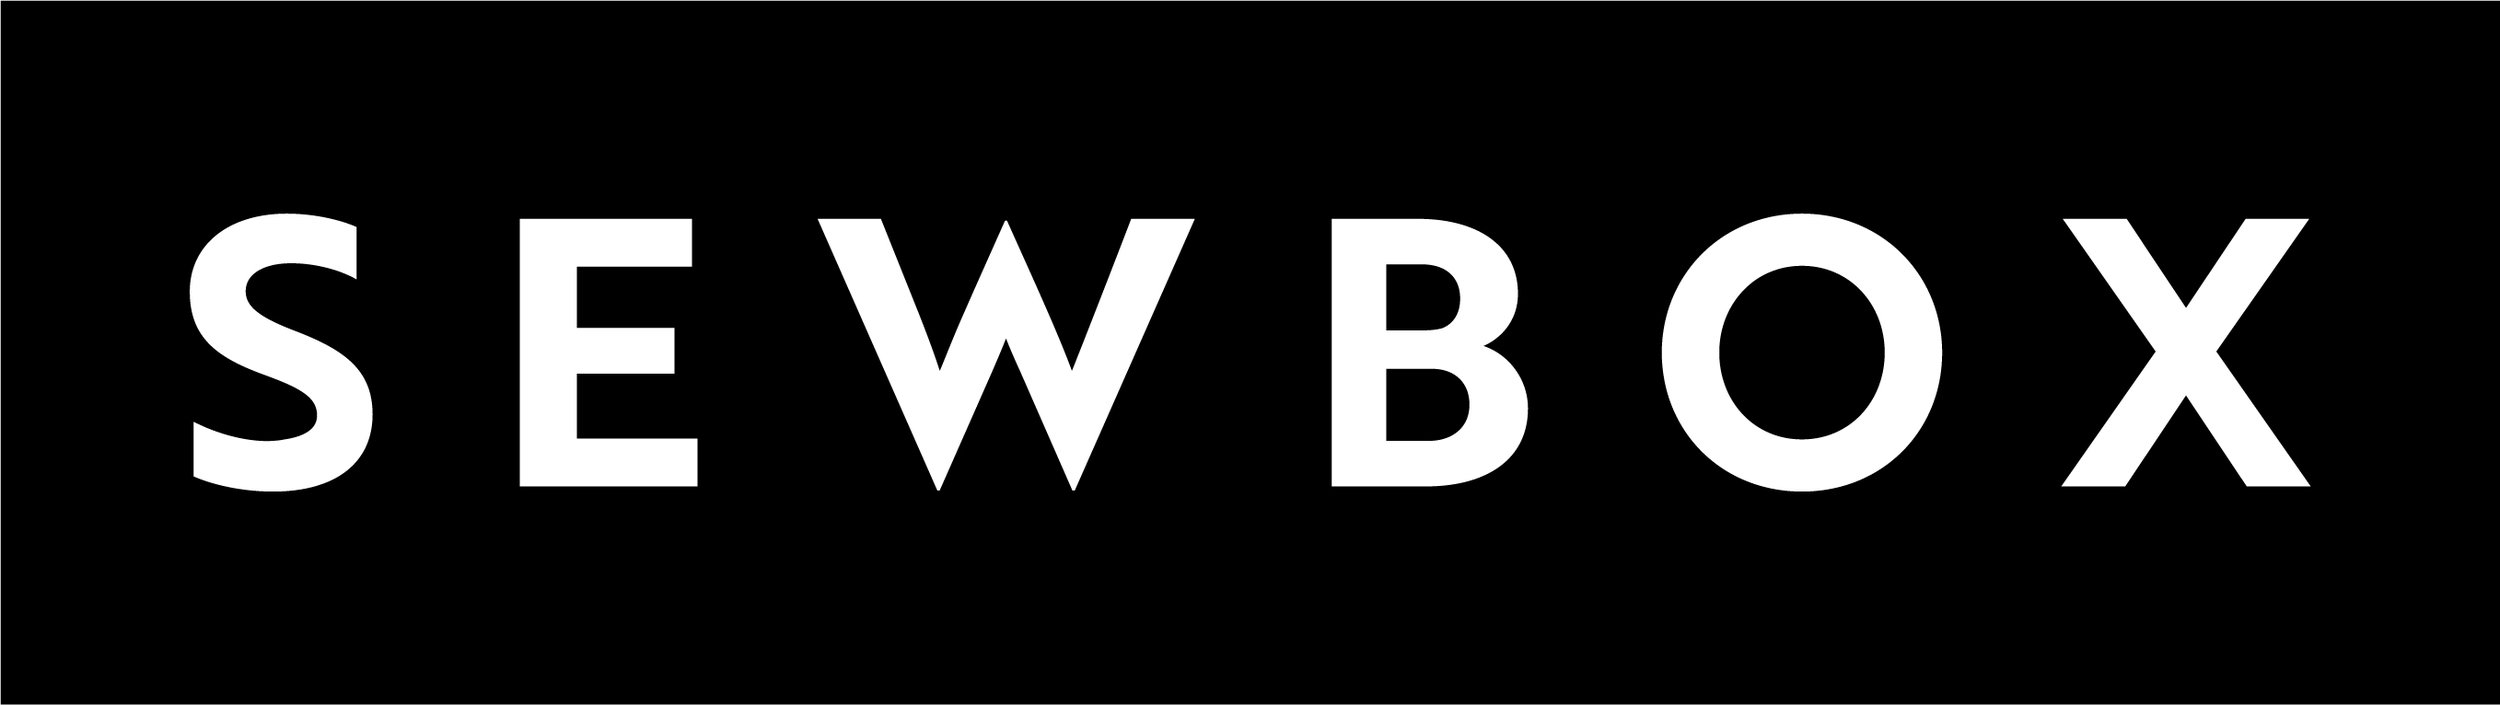 SEWBOX - Black and White Logo.jpg